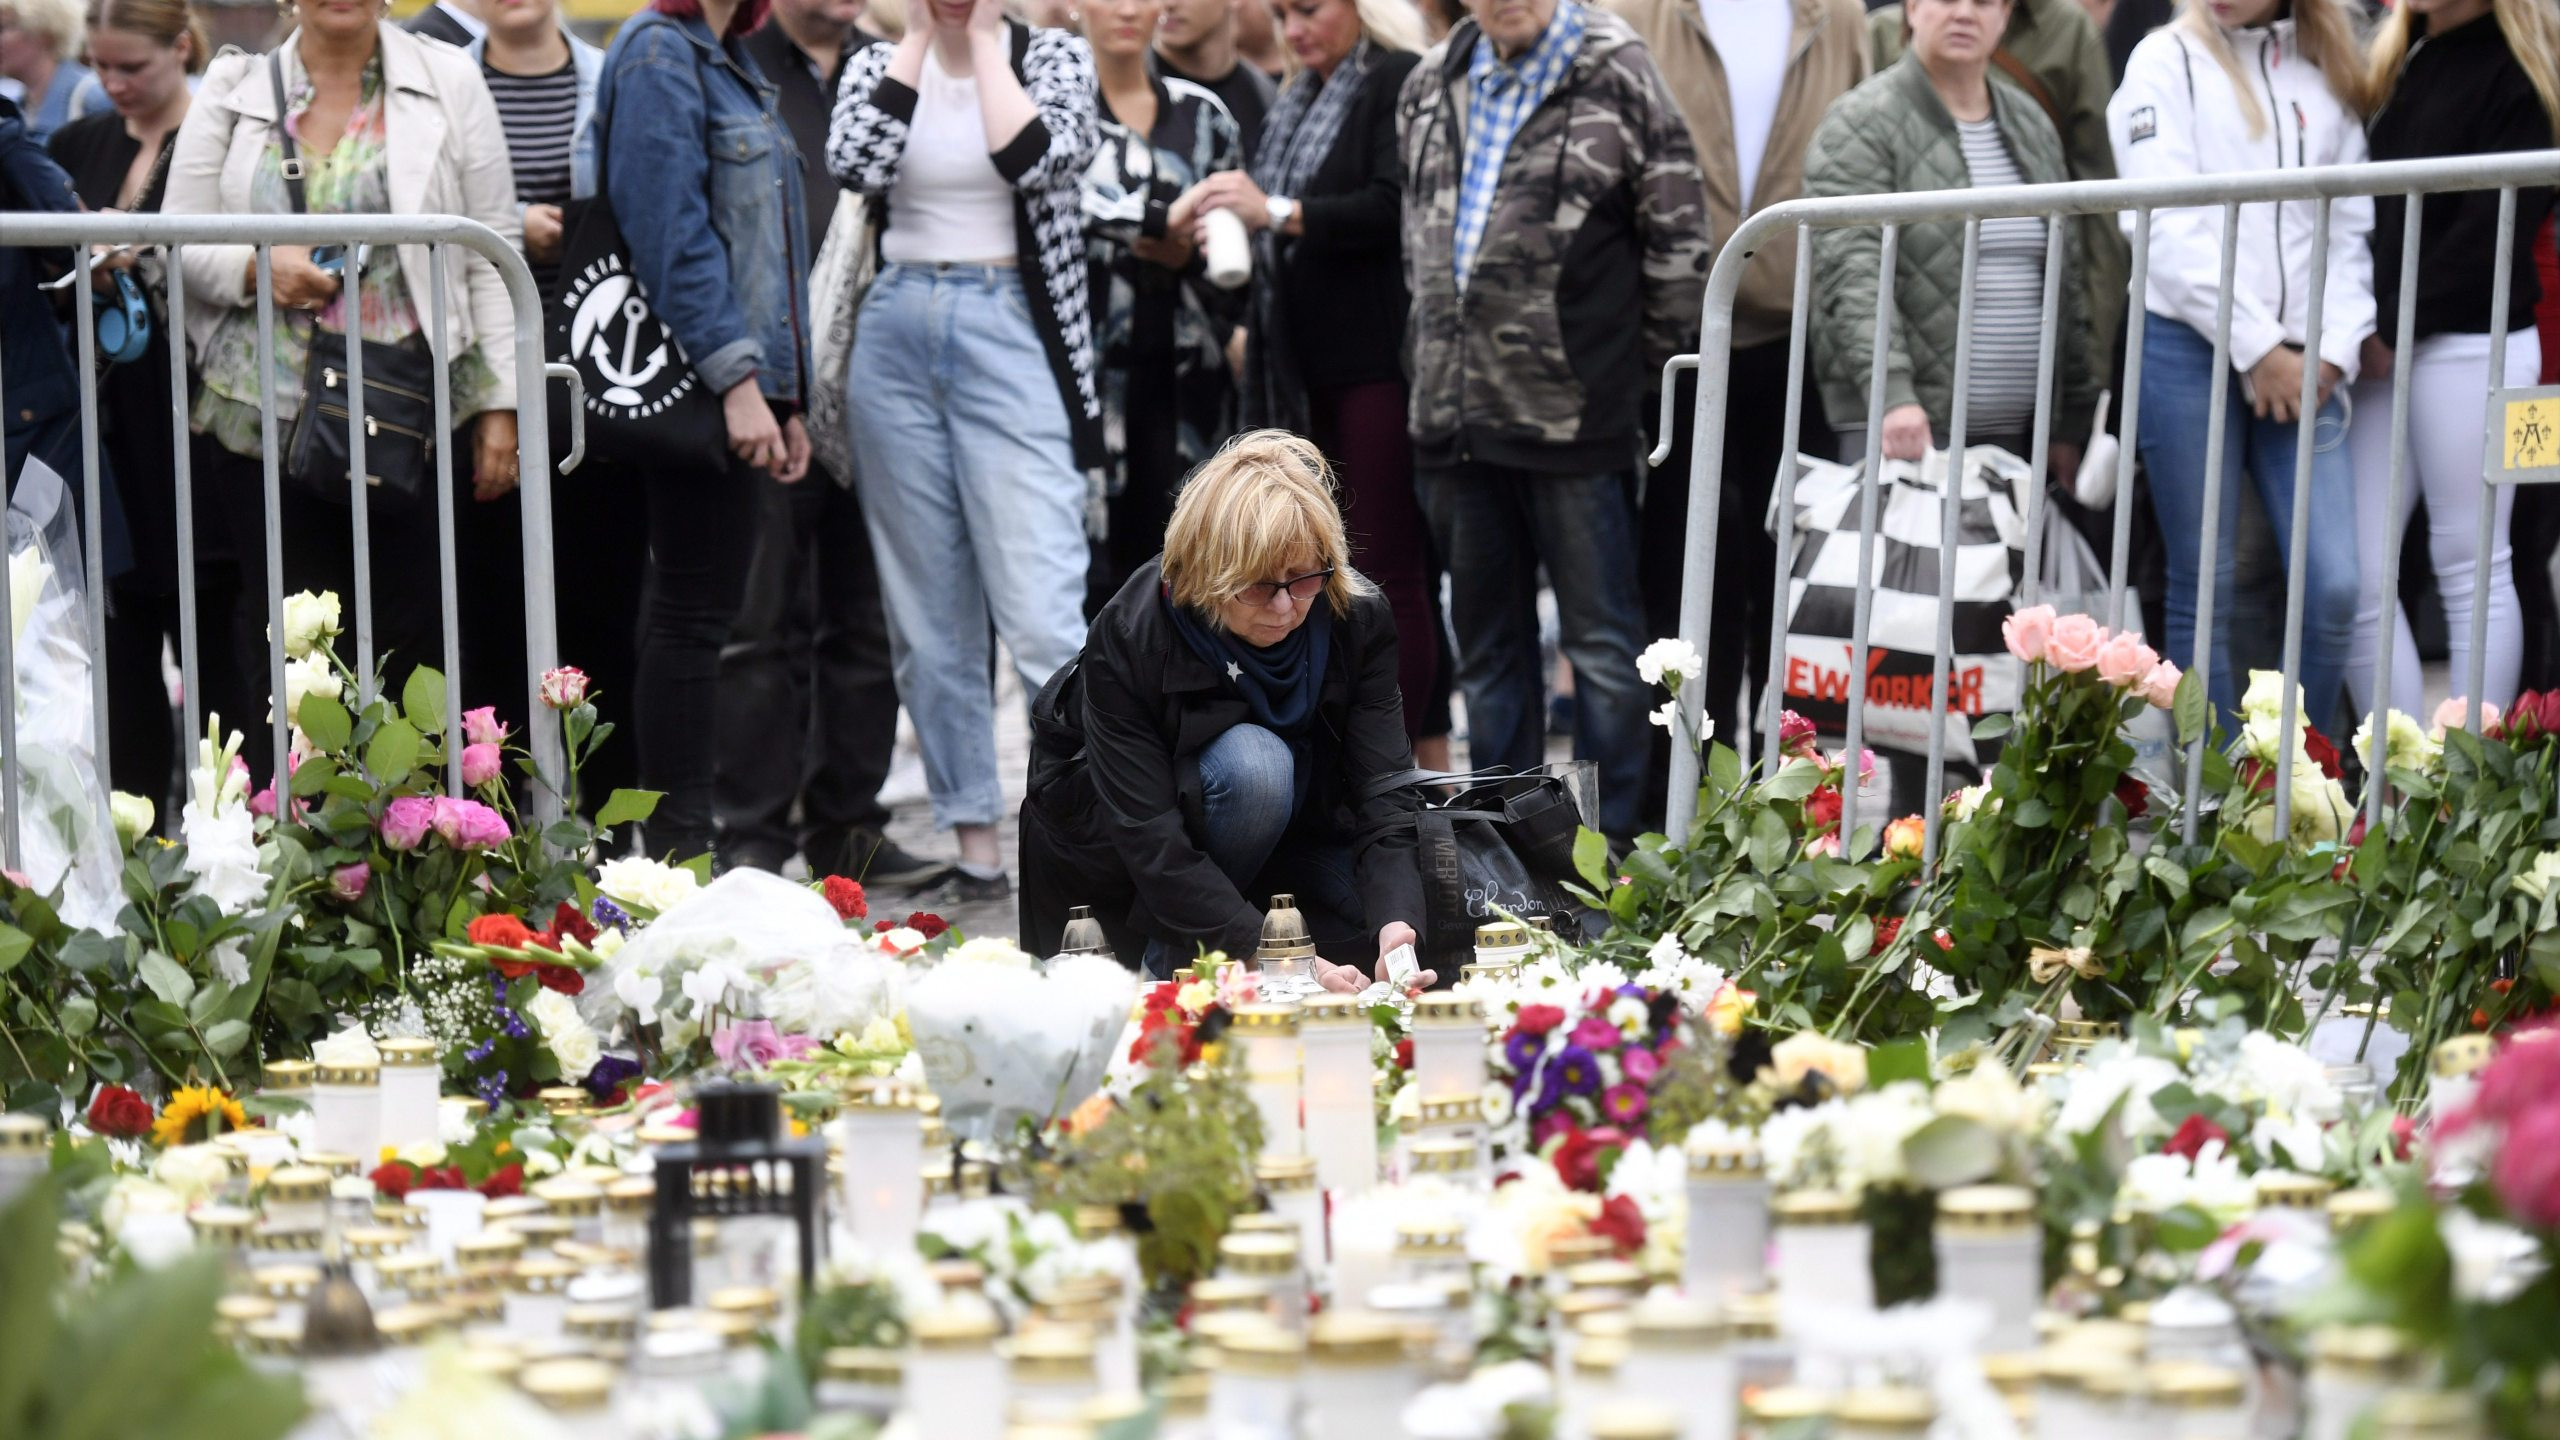 Candles and flowers are left at the makeshift memorial by well wishers for the victims of Friday's stabbings at the Turku Market Square in Finland on Aug. 19, 2017. (Credit: Vesa Moilanen / AFP / Getty Images)